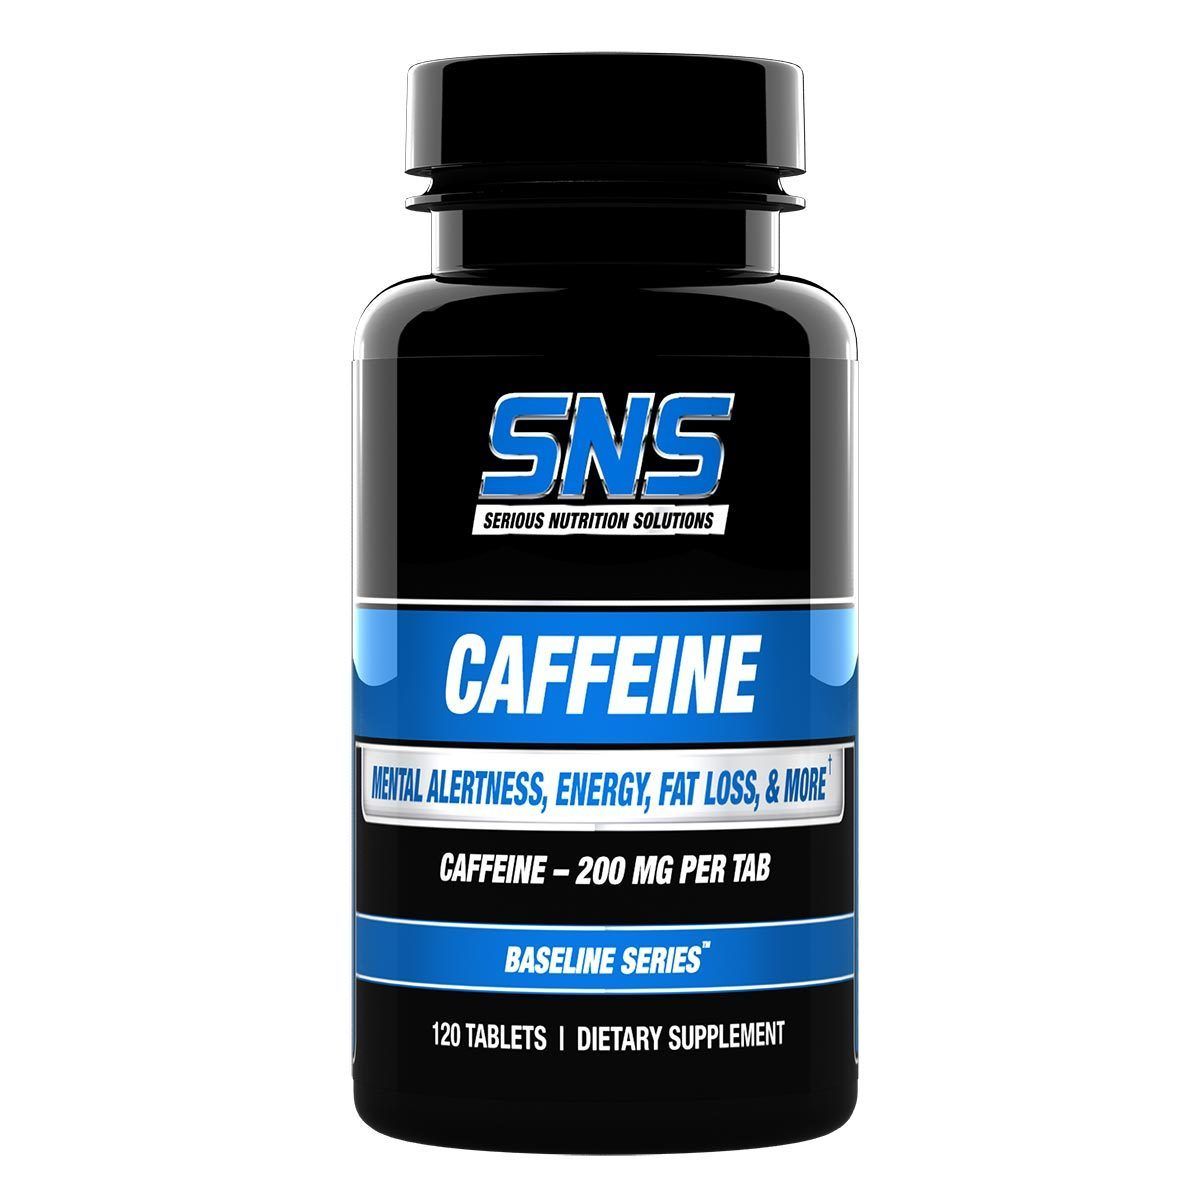 Serious Nutrition Solutions Caffeine 120 Tabs Diet/Energy Serious Nutrition Solutions  (1059041443883)